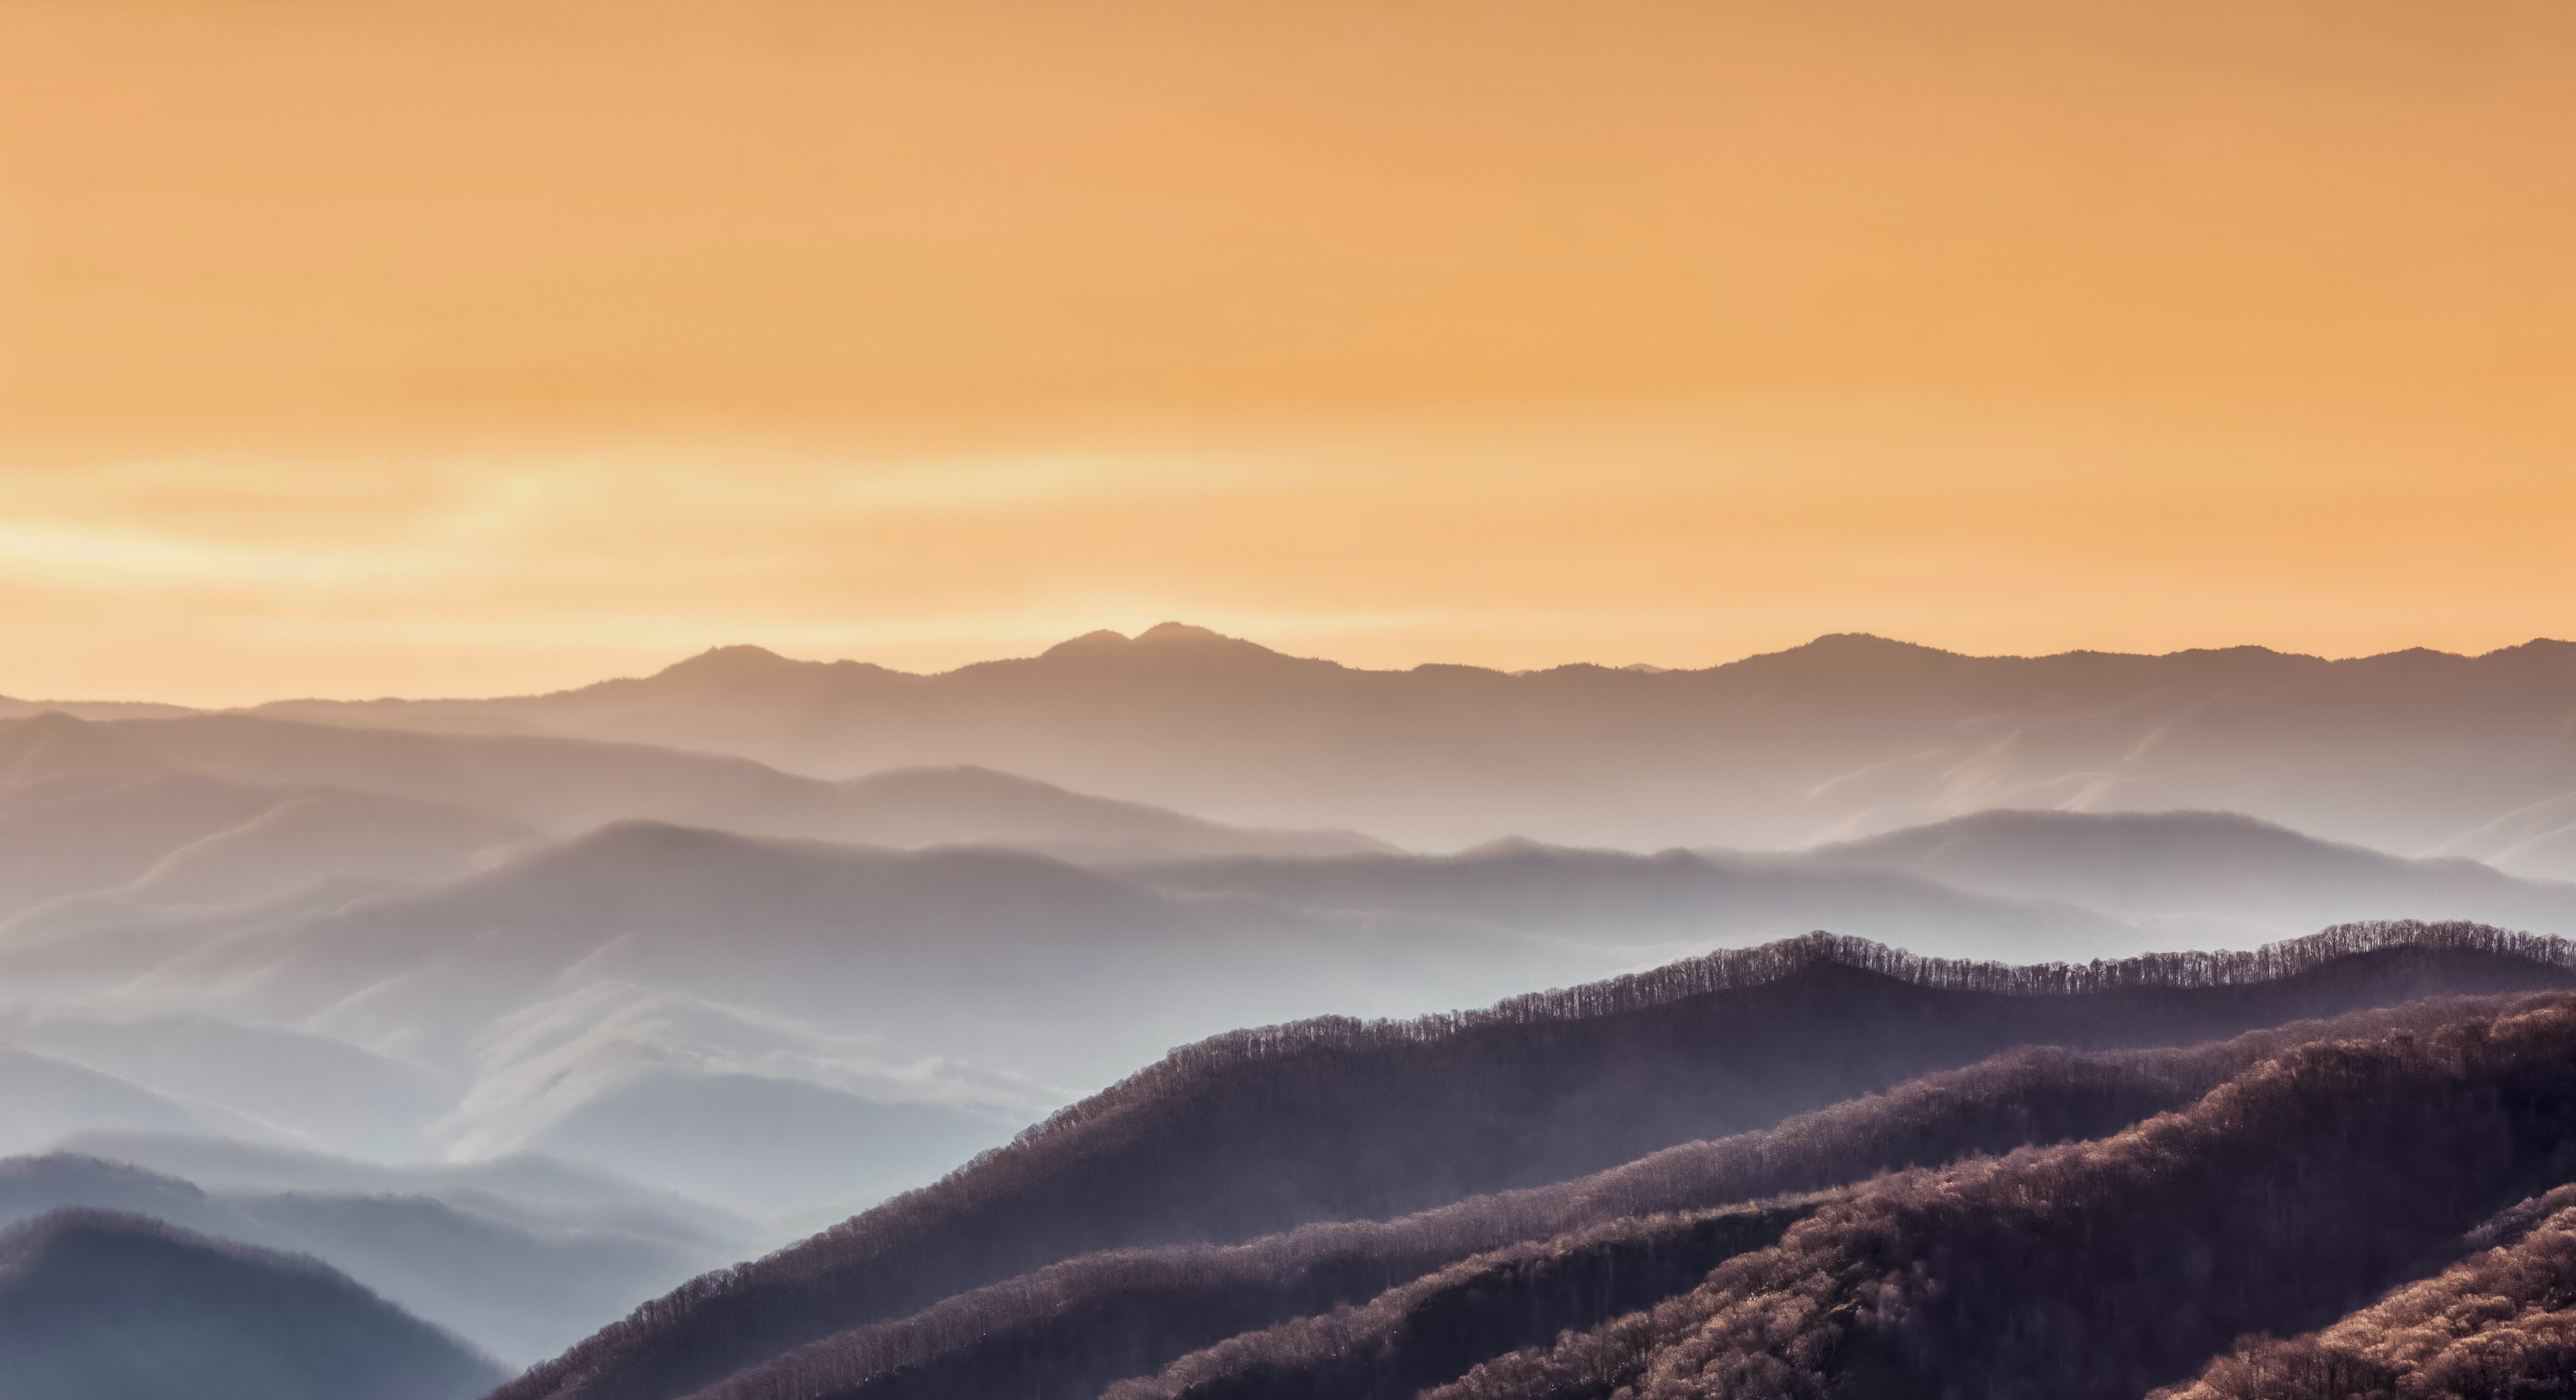 landscape photography of mountains during golden hour